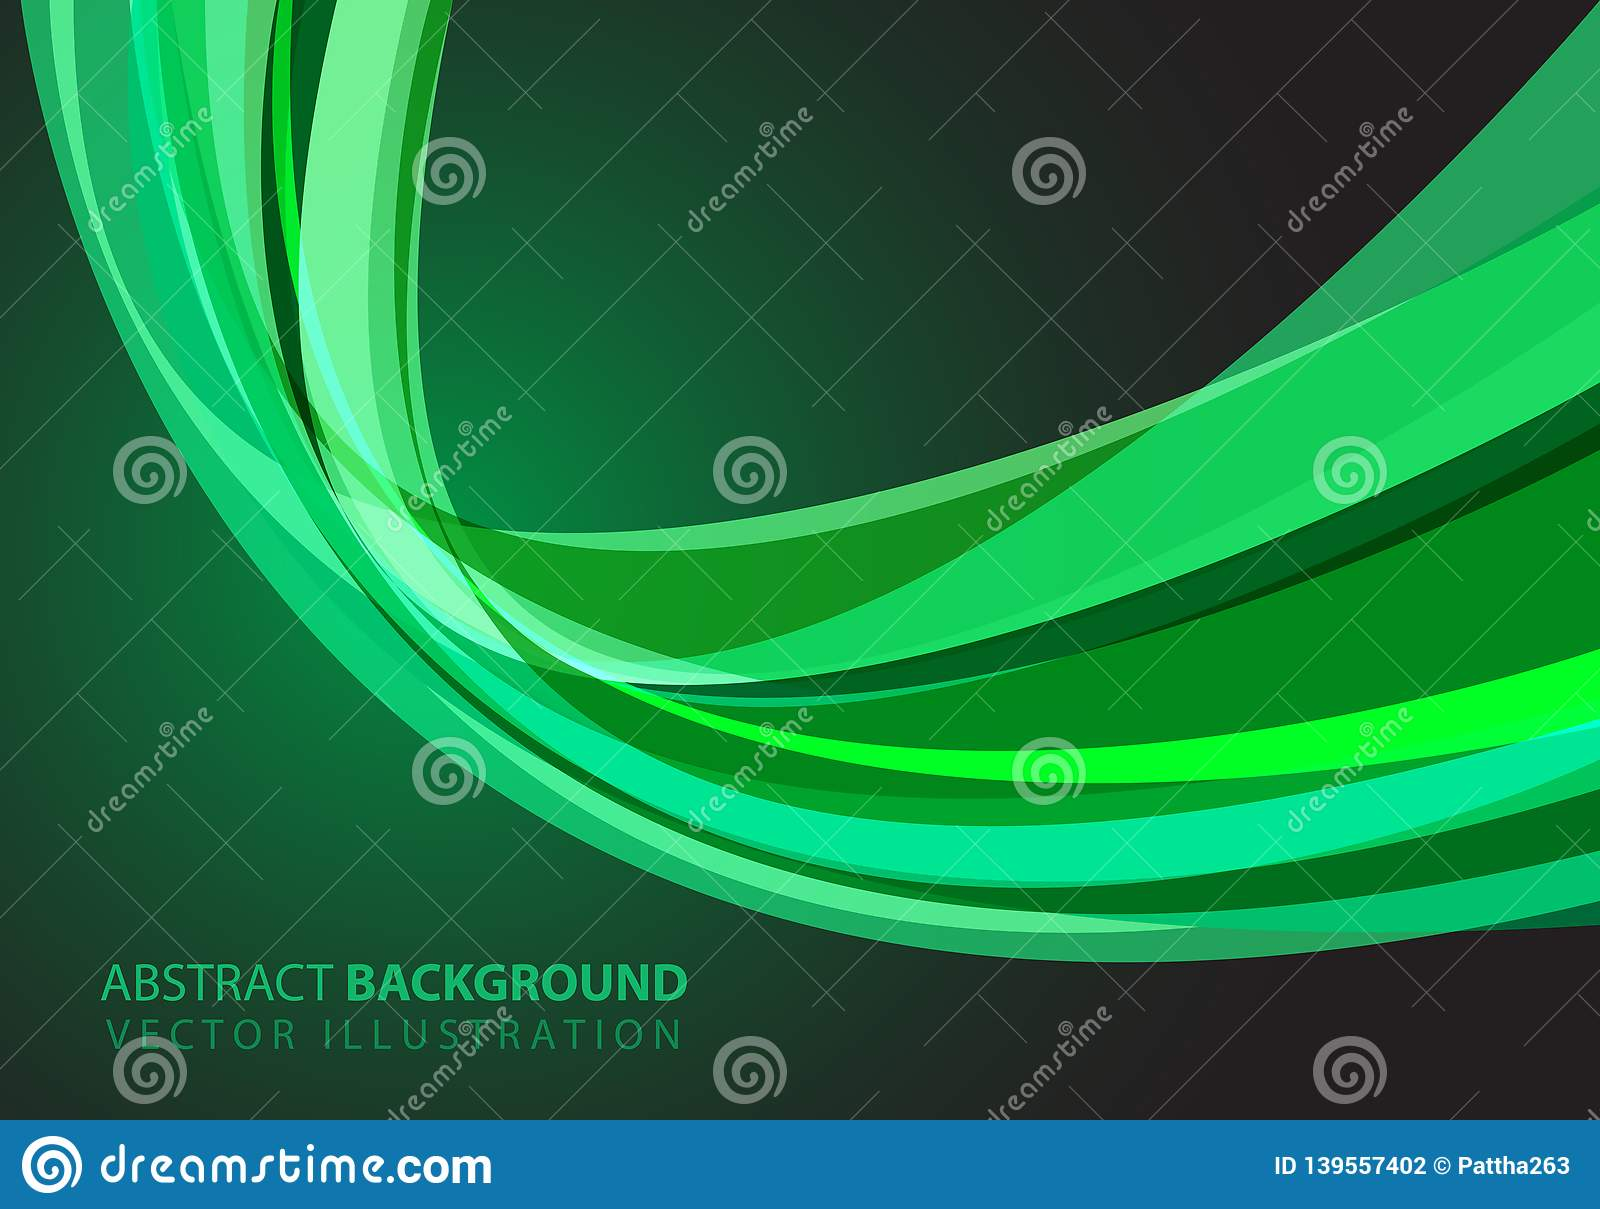 Abstract green glass curve light design modern futuristic luxury background vector